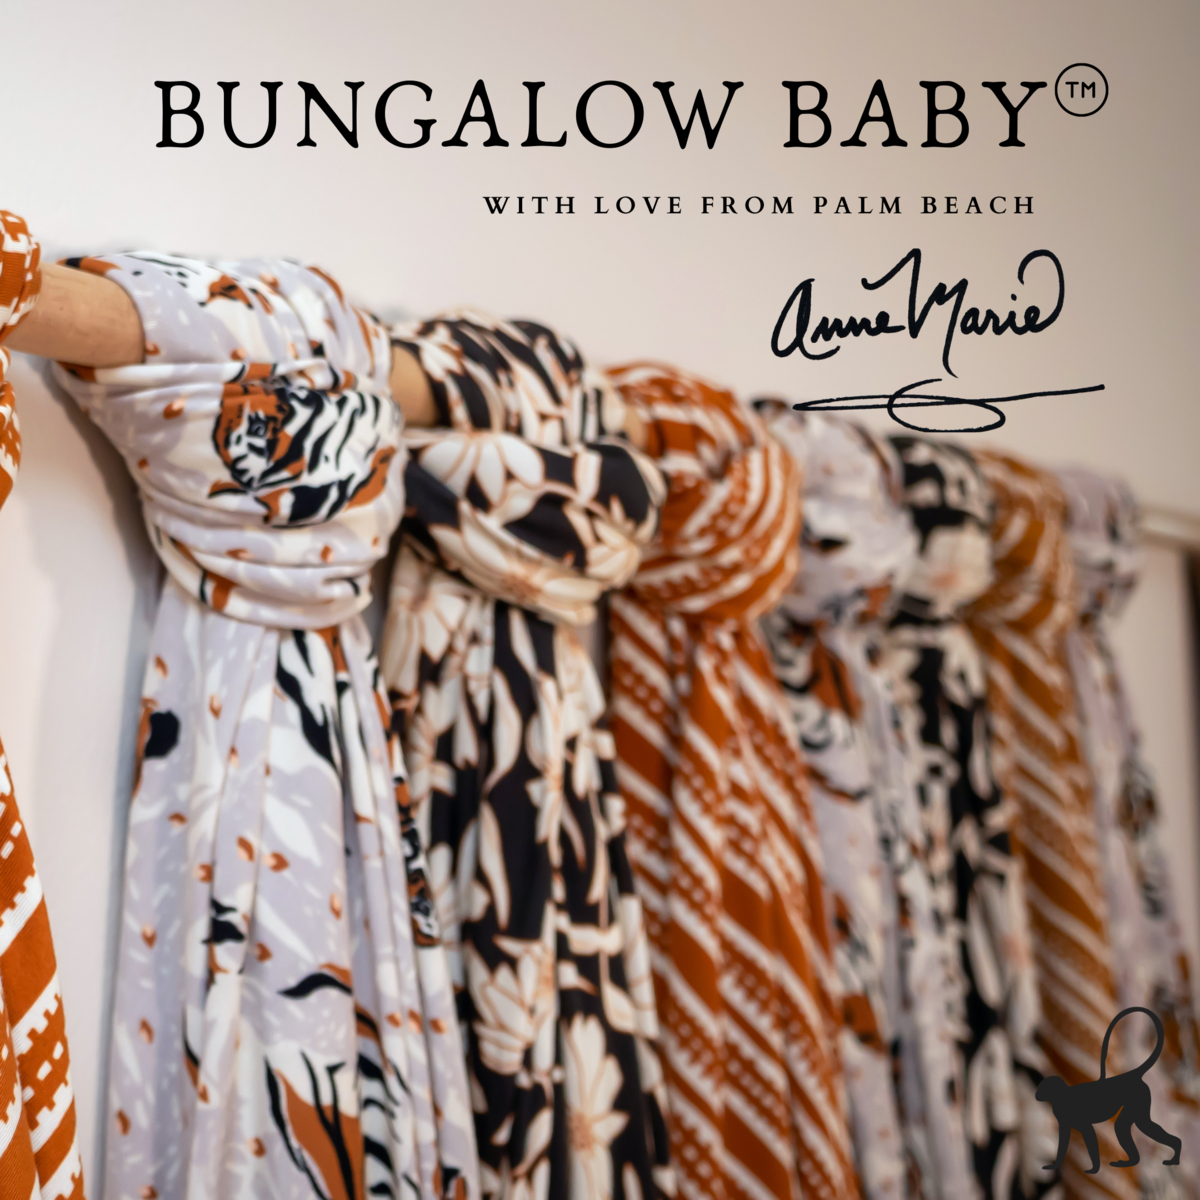 Bungalow Baby Swaddle Set - Premium Bamboo Viscose Baby Swaddle Blanket & Hat Set, Baby Boy, Baby Girl, Unisex, Newborn Swaddle, Baby Wrap, Bamboo Blanket, (Wild Flower)